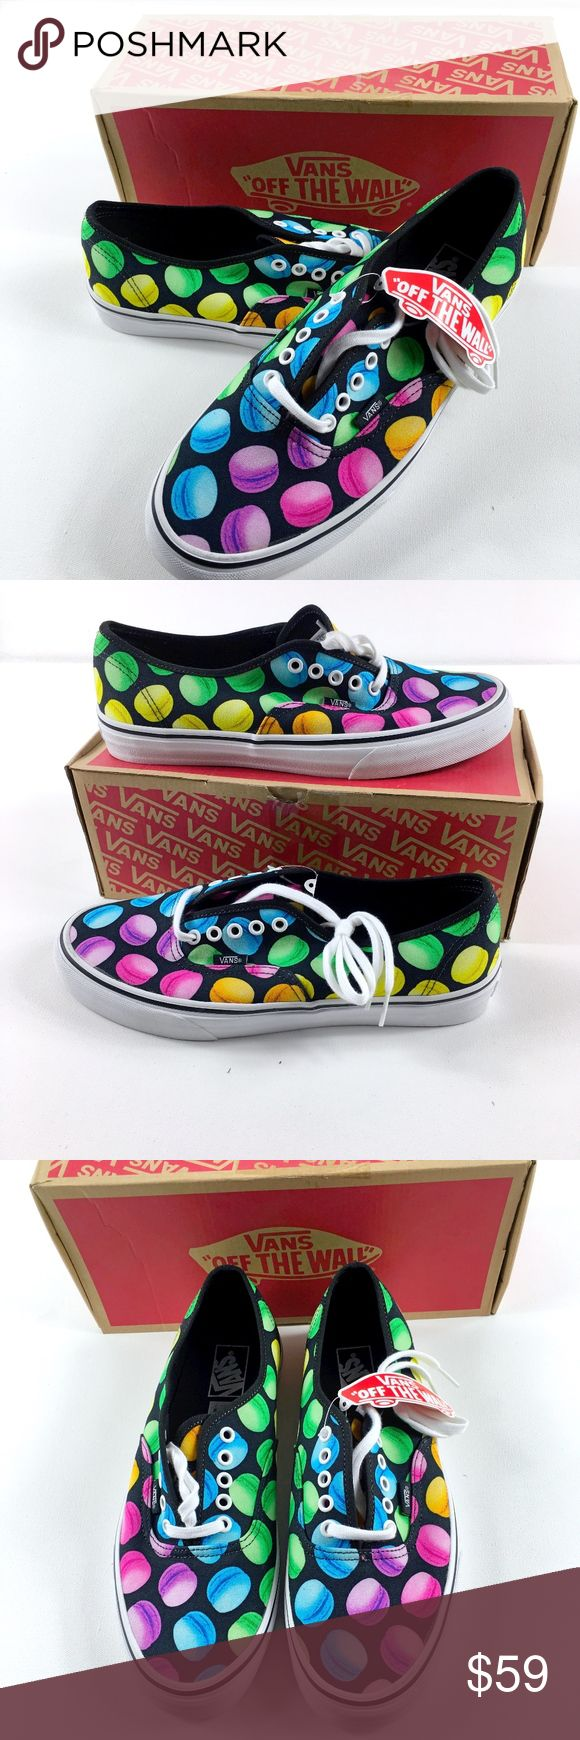 Vans Authentic Late Night Macaroon Unisex Vans Authentic Late Night Macaroon Black RARE and collectable Brand new in original box Sizes: 6Men/7.5 Women 8 Men/ 9.5 Women  Rare collectable Vans for the Macaroon Lover or Skater in your life.  Holiday Gift/ Sneakers / Skate Shoes/ Macaroon Vans Shoes Sneakers